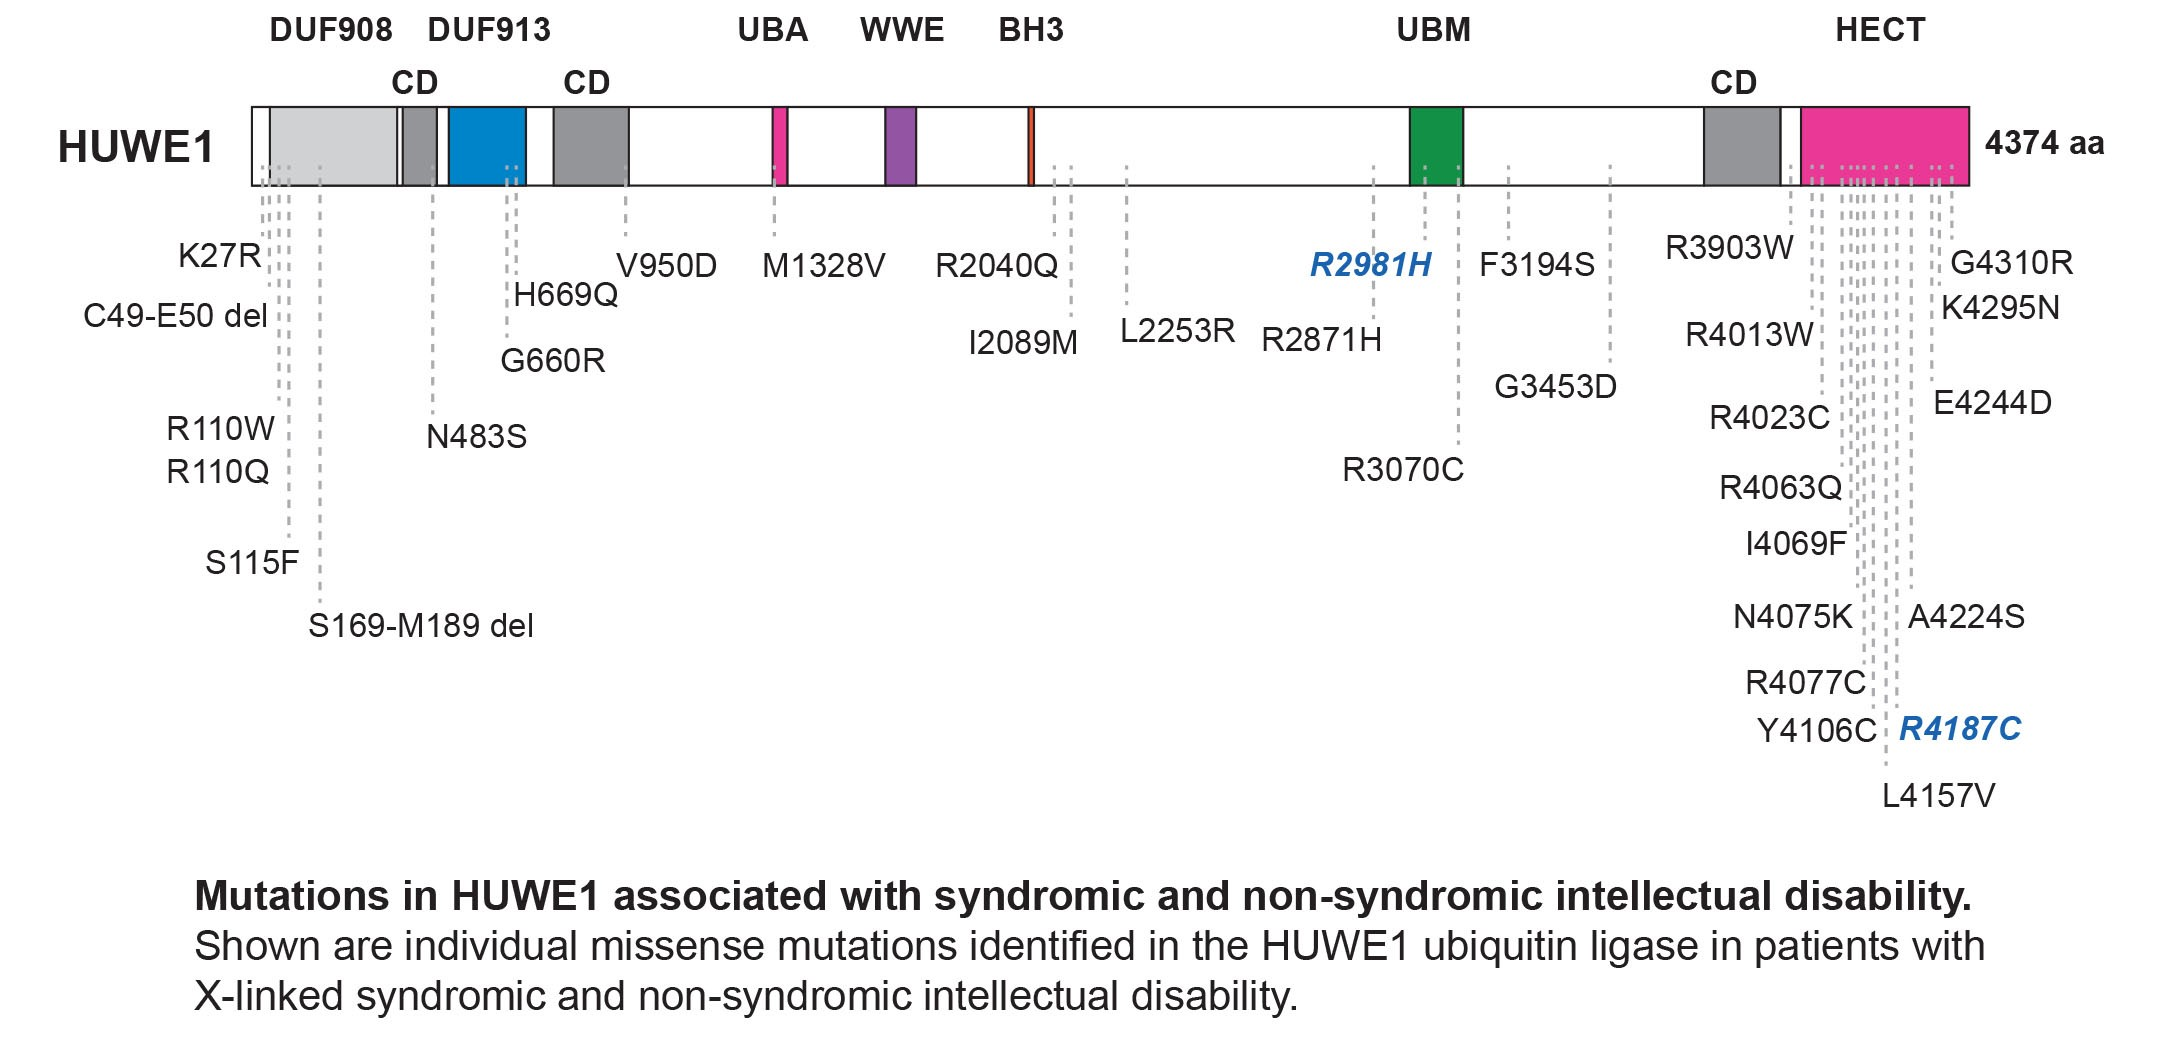 Mutations associated with syndromic and non-syndromic intellectual disability